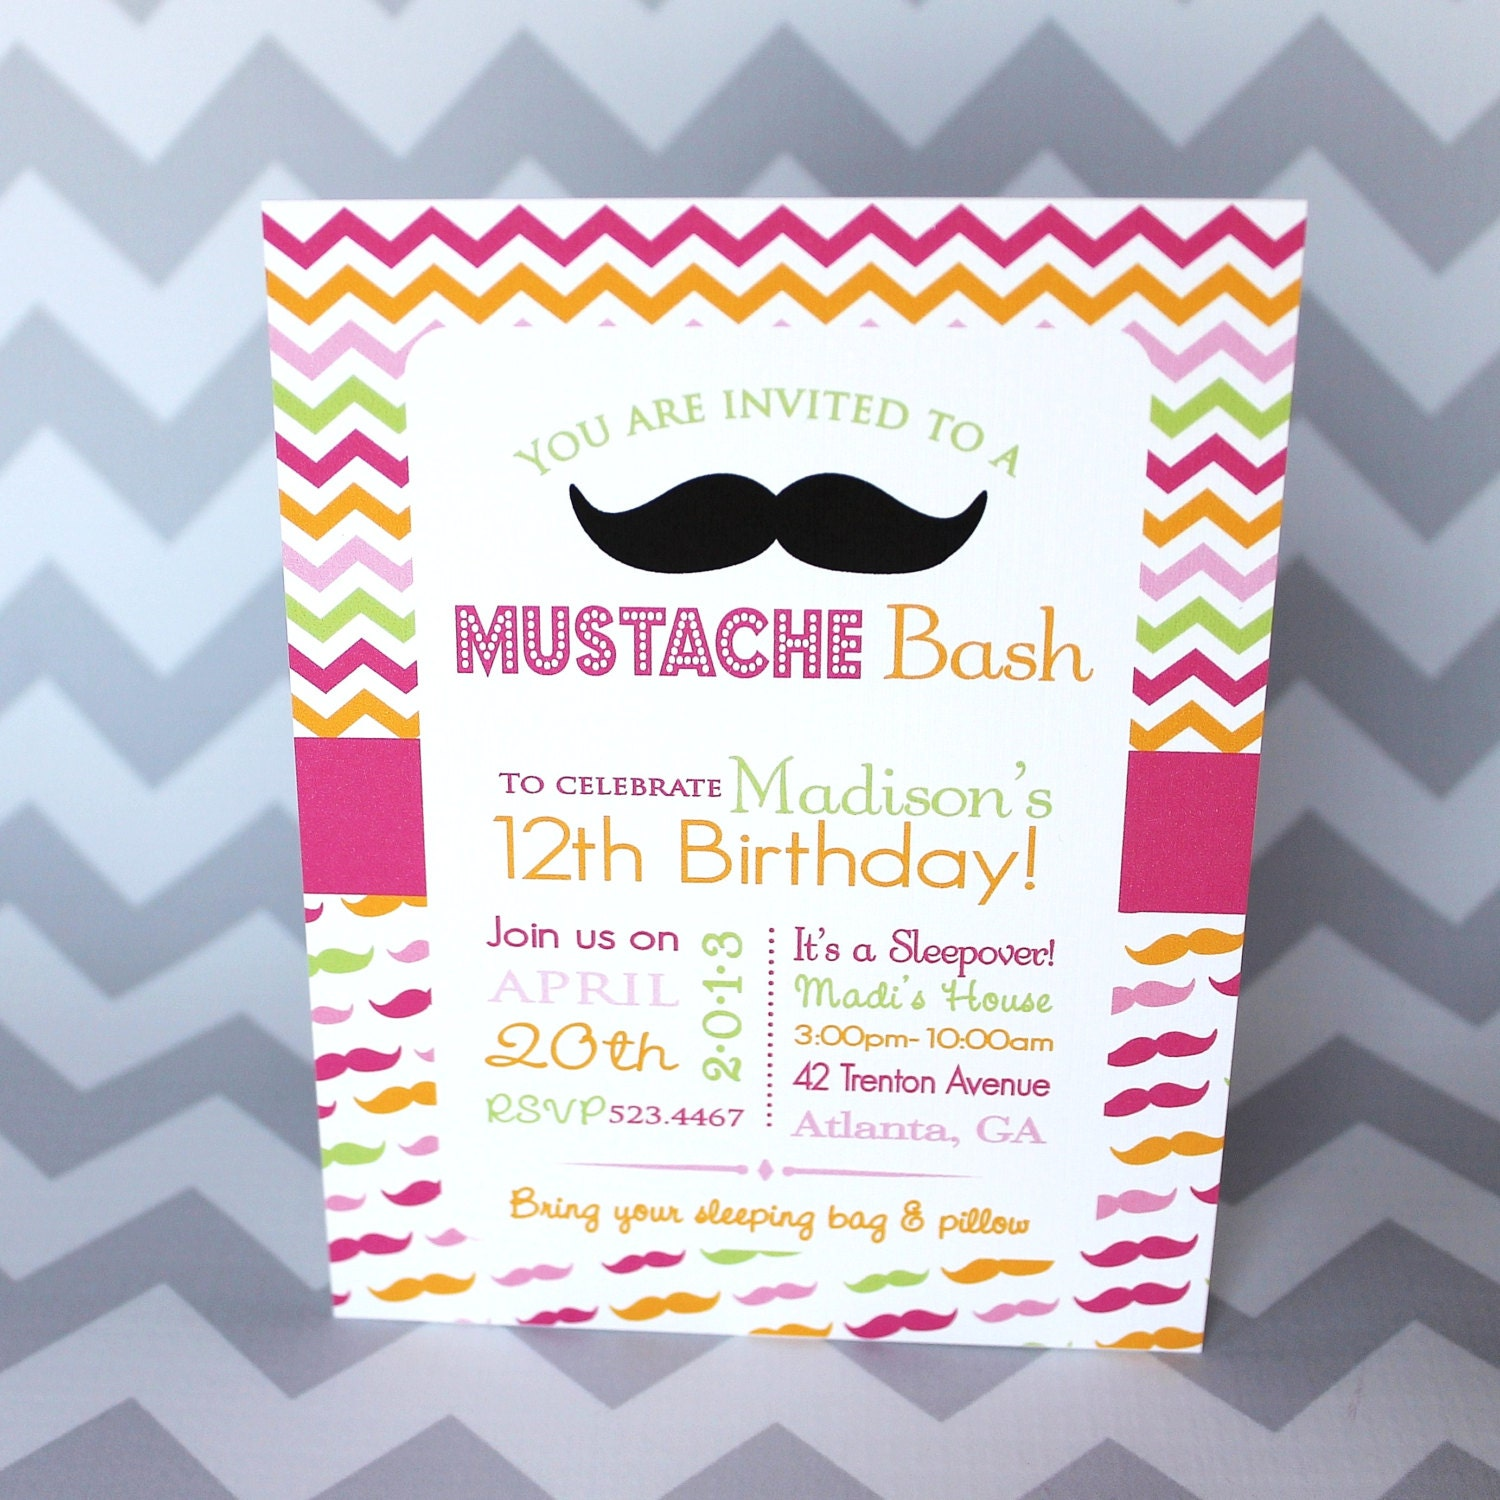 Mustache Bash Birthday Invitation Teen Girl By BabycakesArt